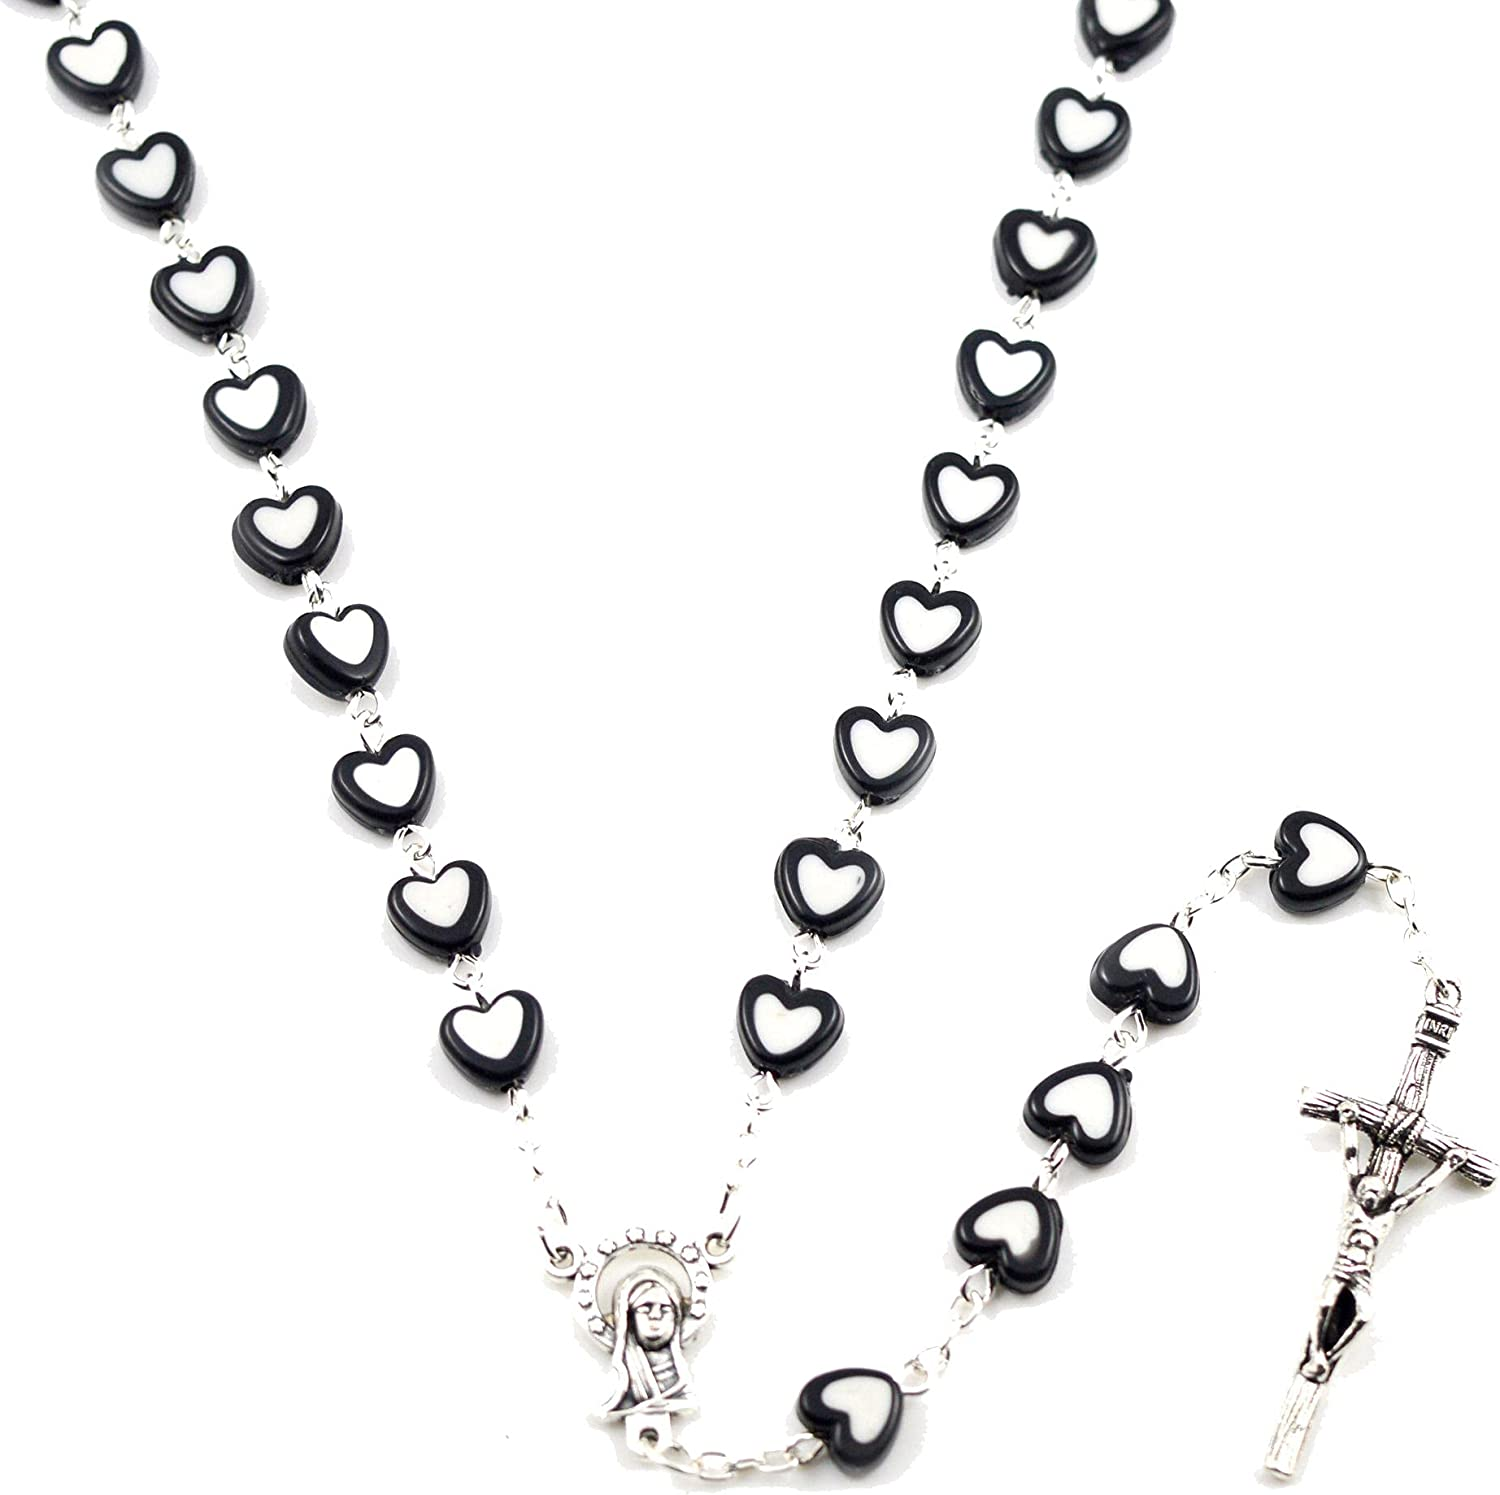 Heart Acrylic Rosary Necklace Pendant Religious Crucifix Alloy Chain Fashion Women Jewelry